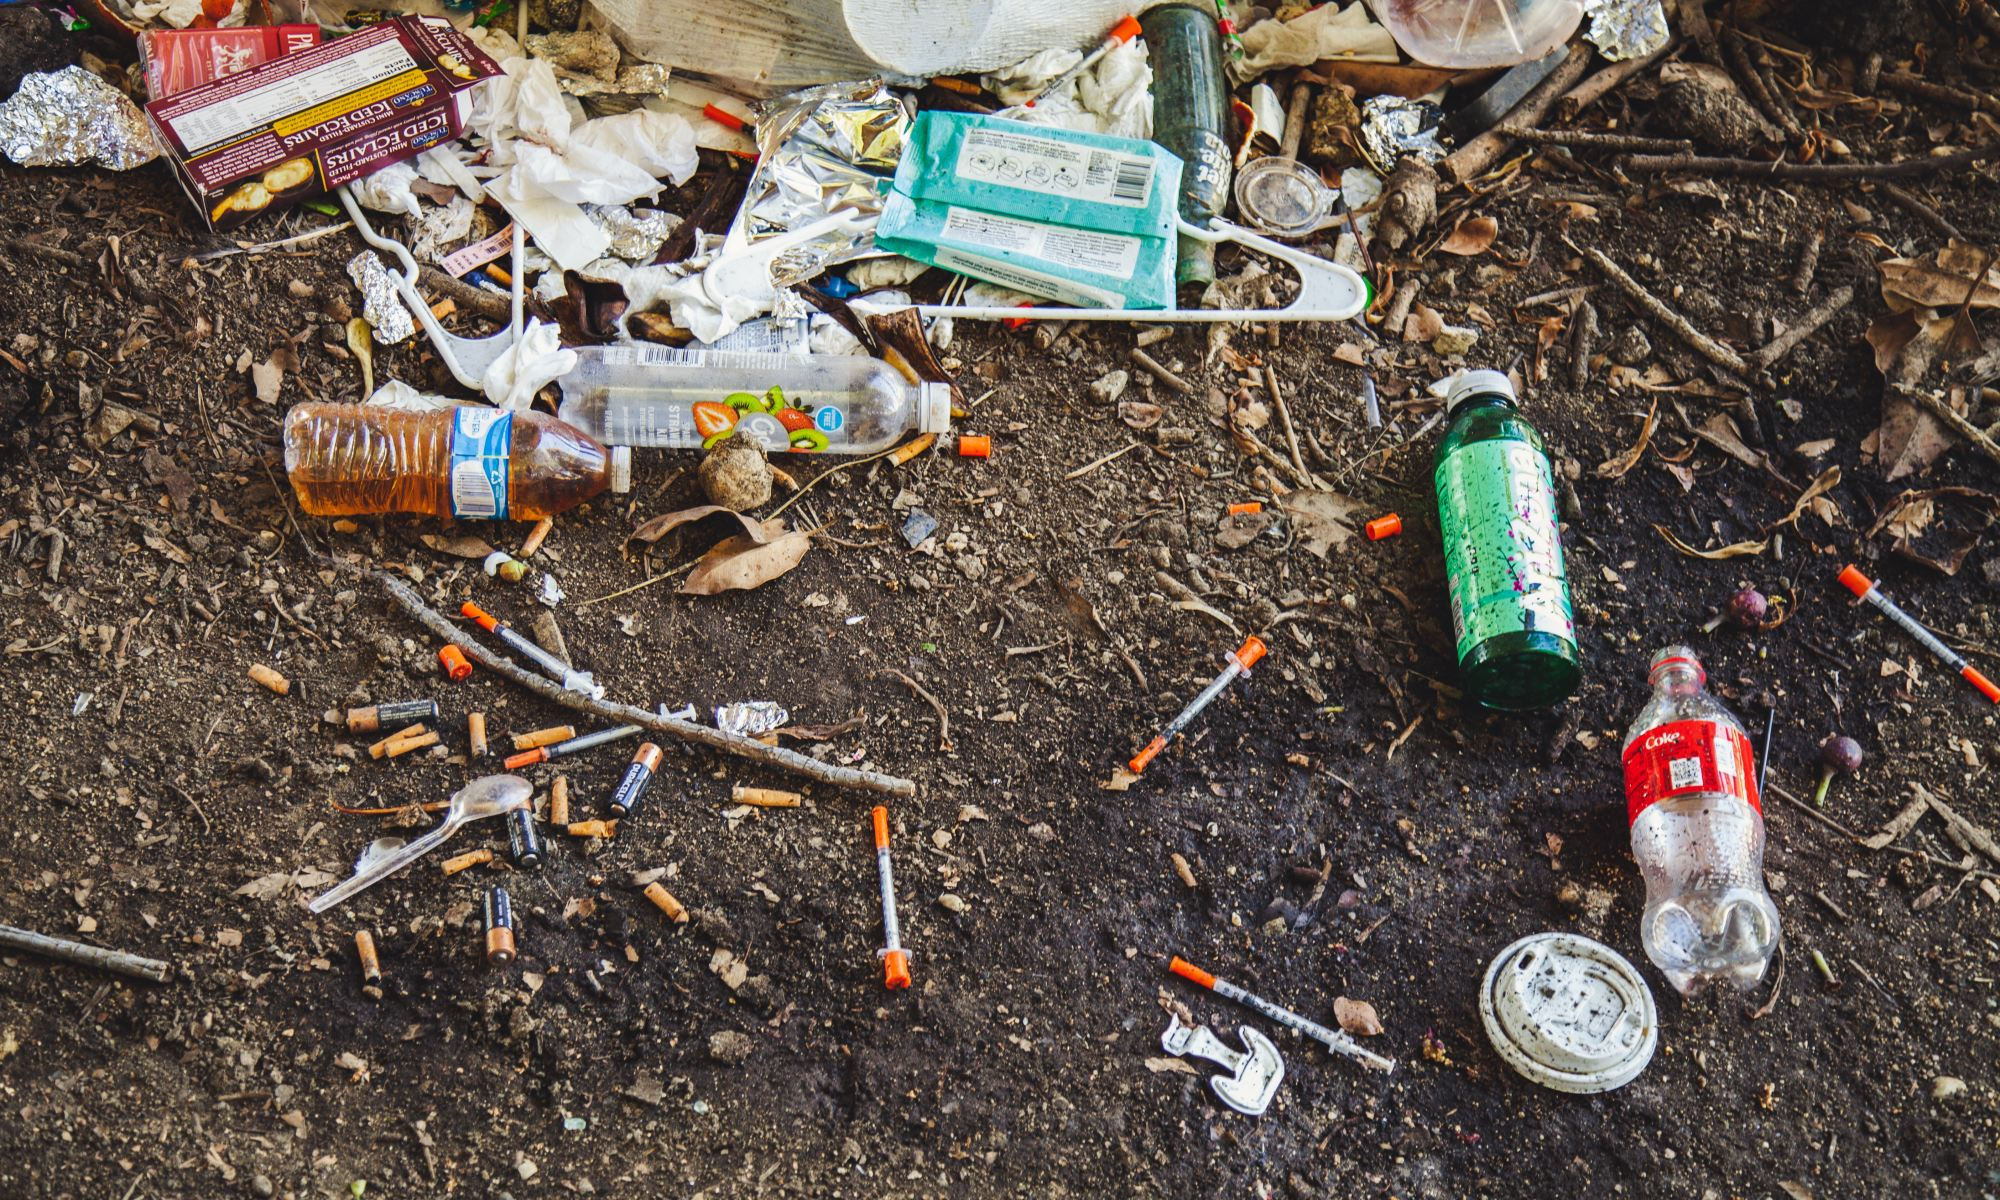 Heroin needles and trash on soil